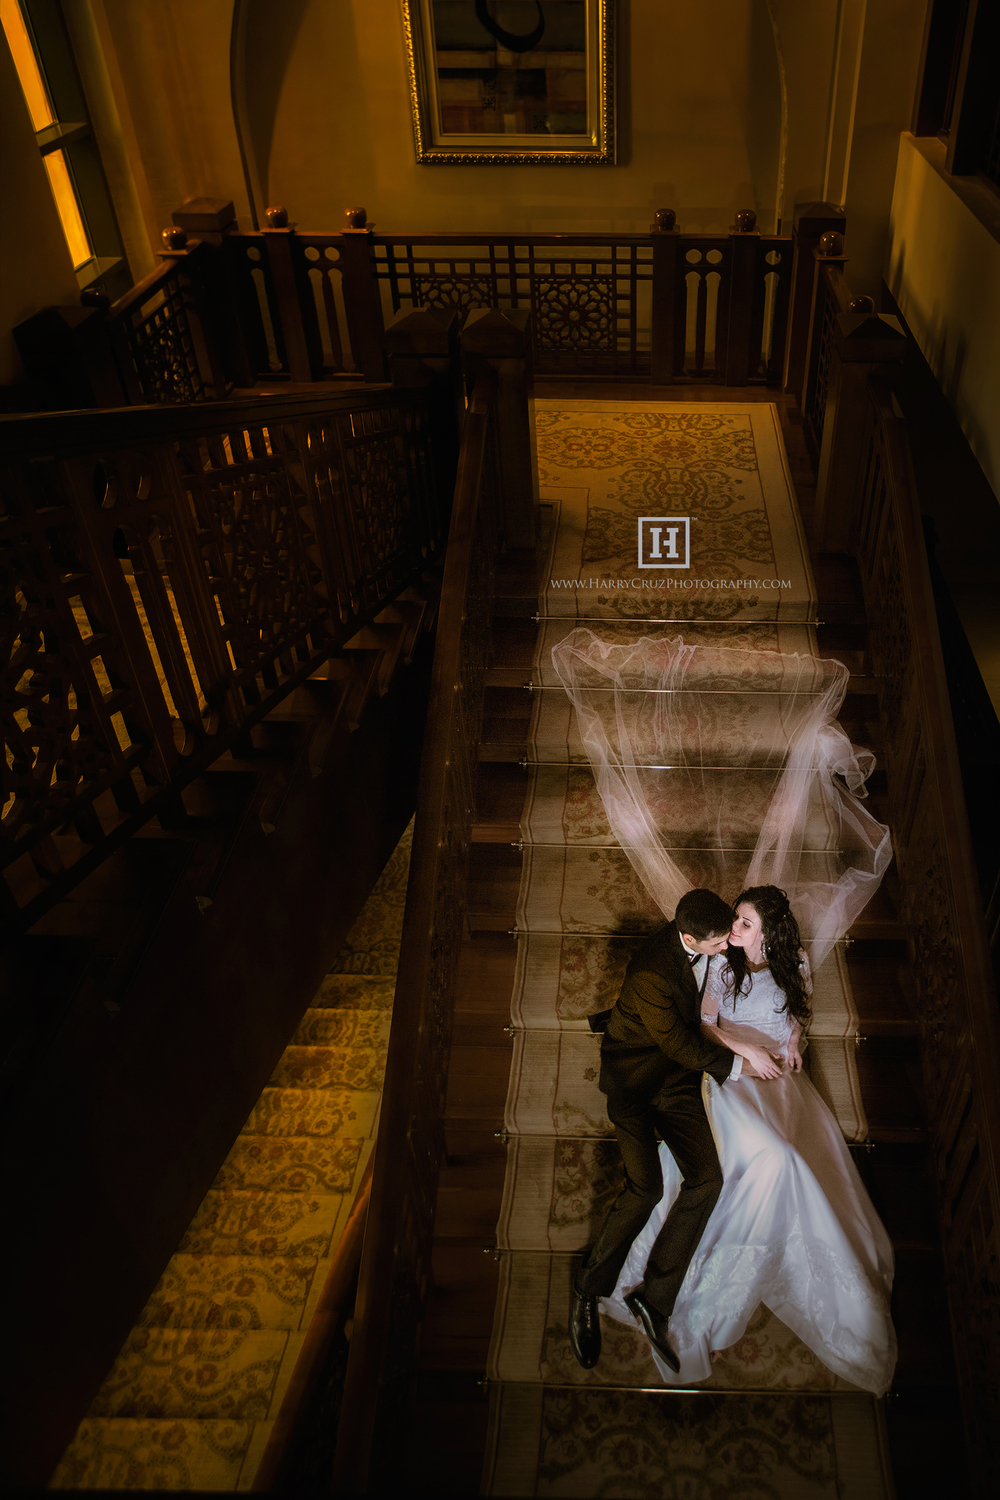 www.harrycruzphotography.com  All Rights Reserved DubaiWeddingPhotographer